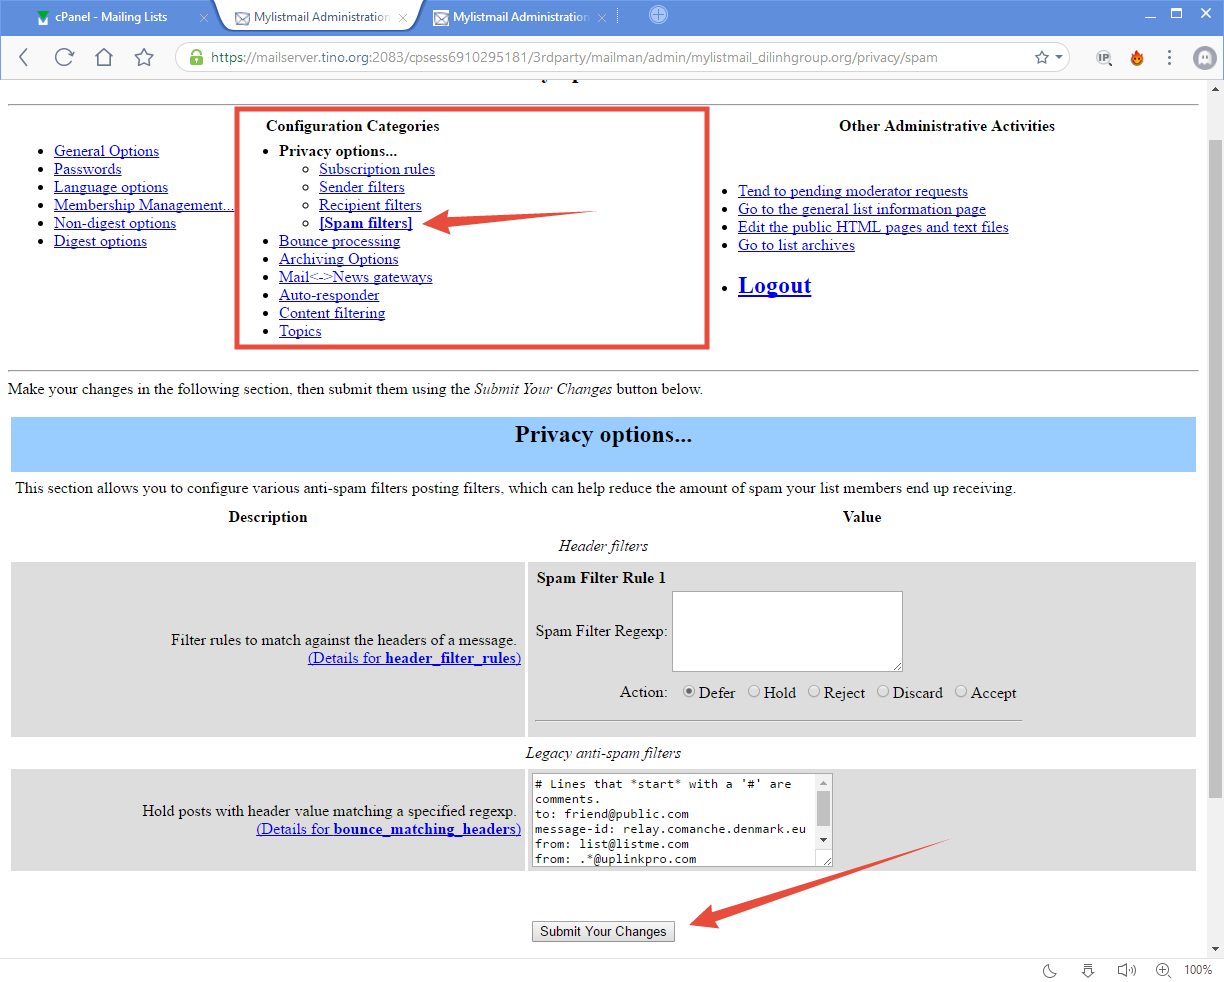 [cPanel] - Mailing Lists 19